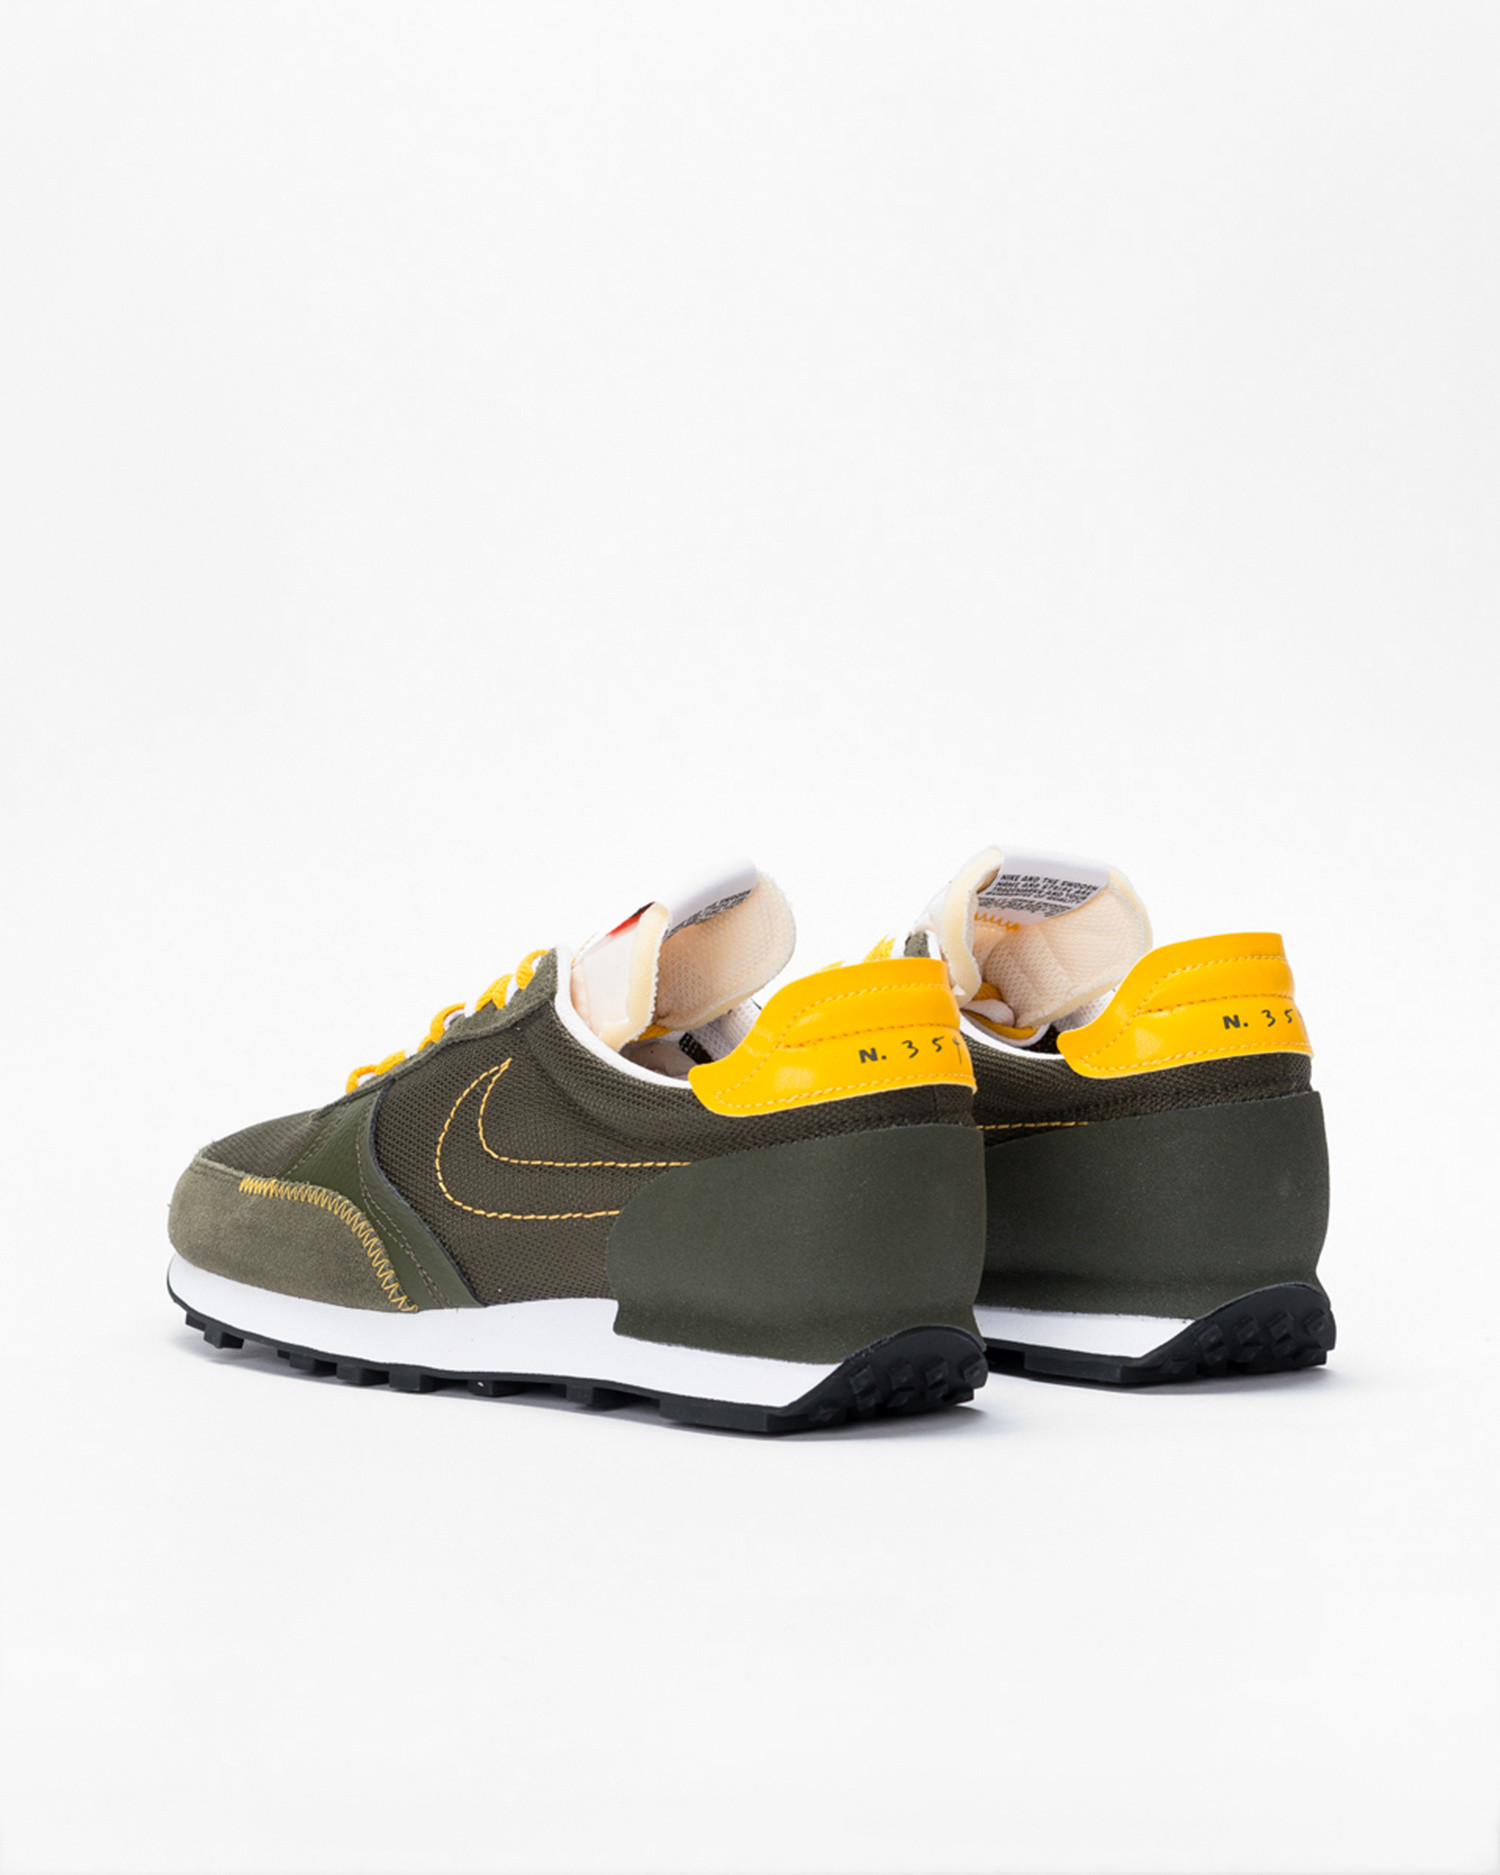 Nike dbreak-type  Cargo khaki/university gold-sail-white